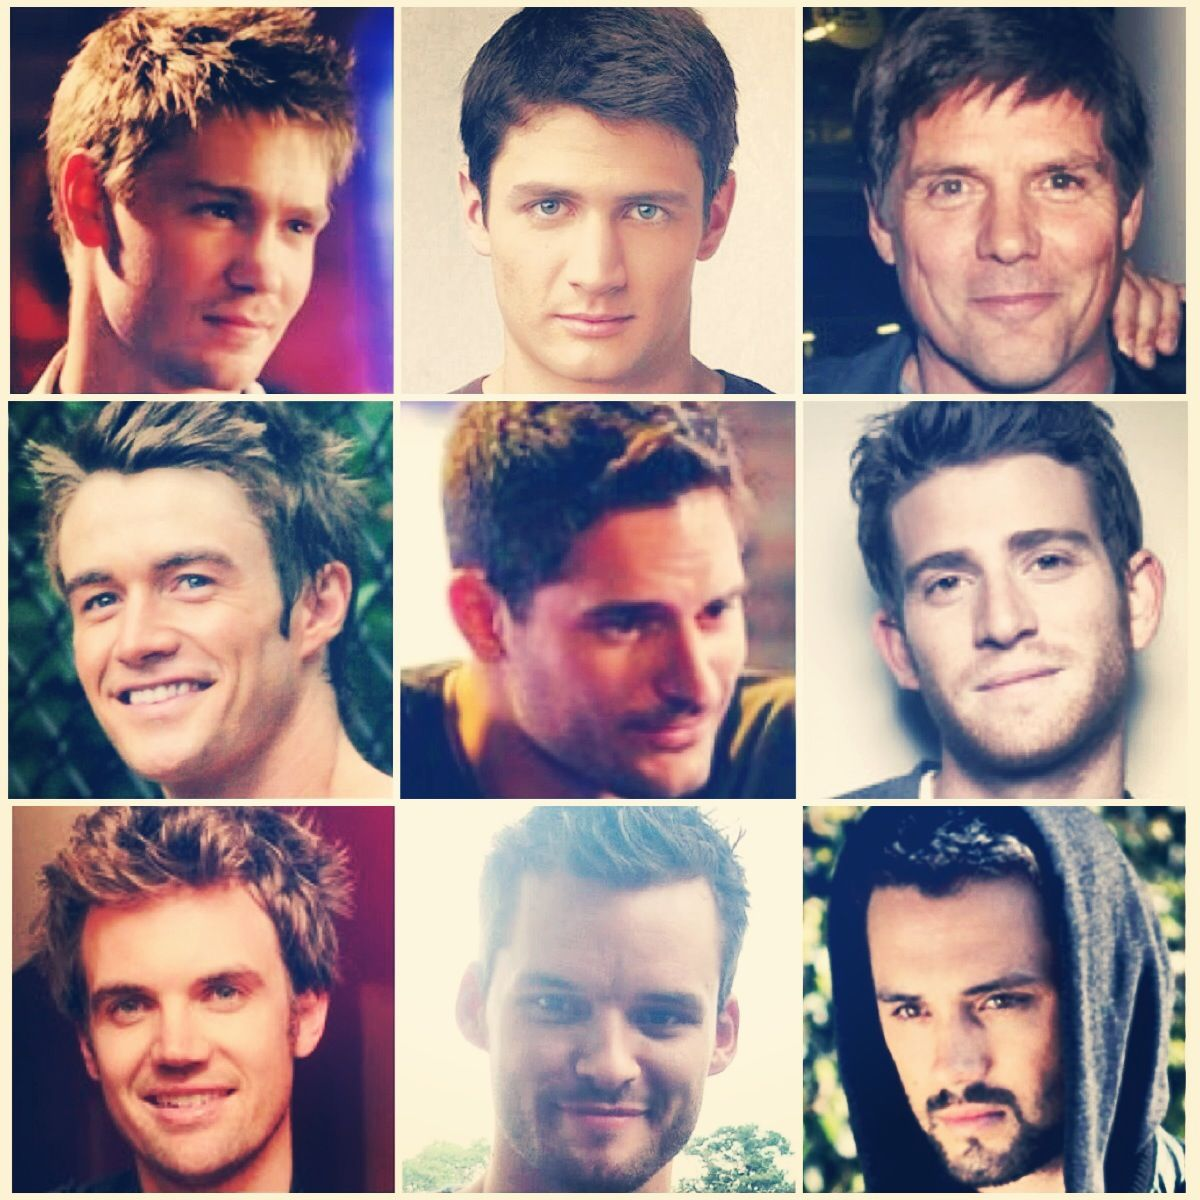 the men of One Tree Hill...Chad Michael Murray, James Lafferty, Paul Johansson, Robert Buckley, Joe Manganiello, Bryan Greenberg, Tyler Hilton, Austin Nichols, Stephen Colletti. <3